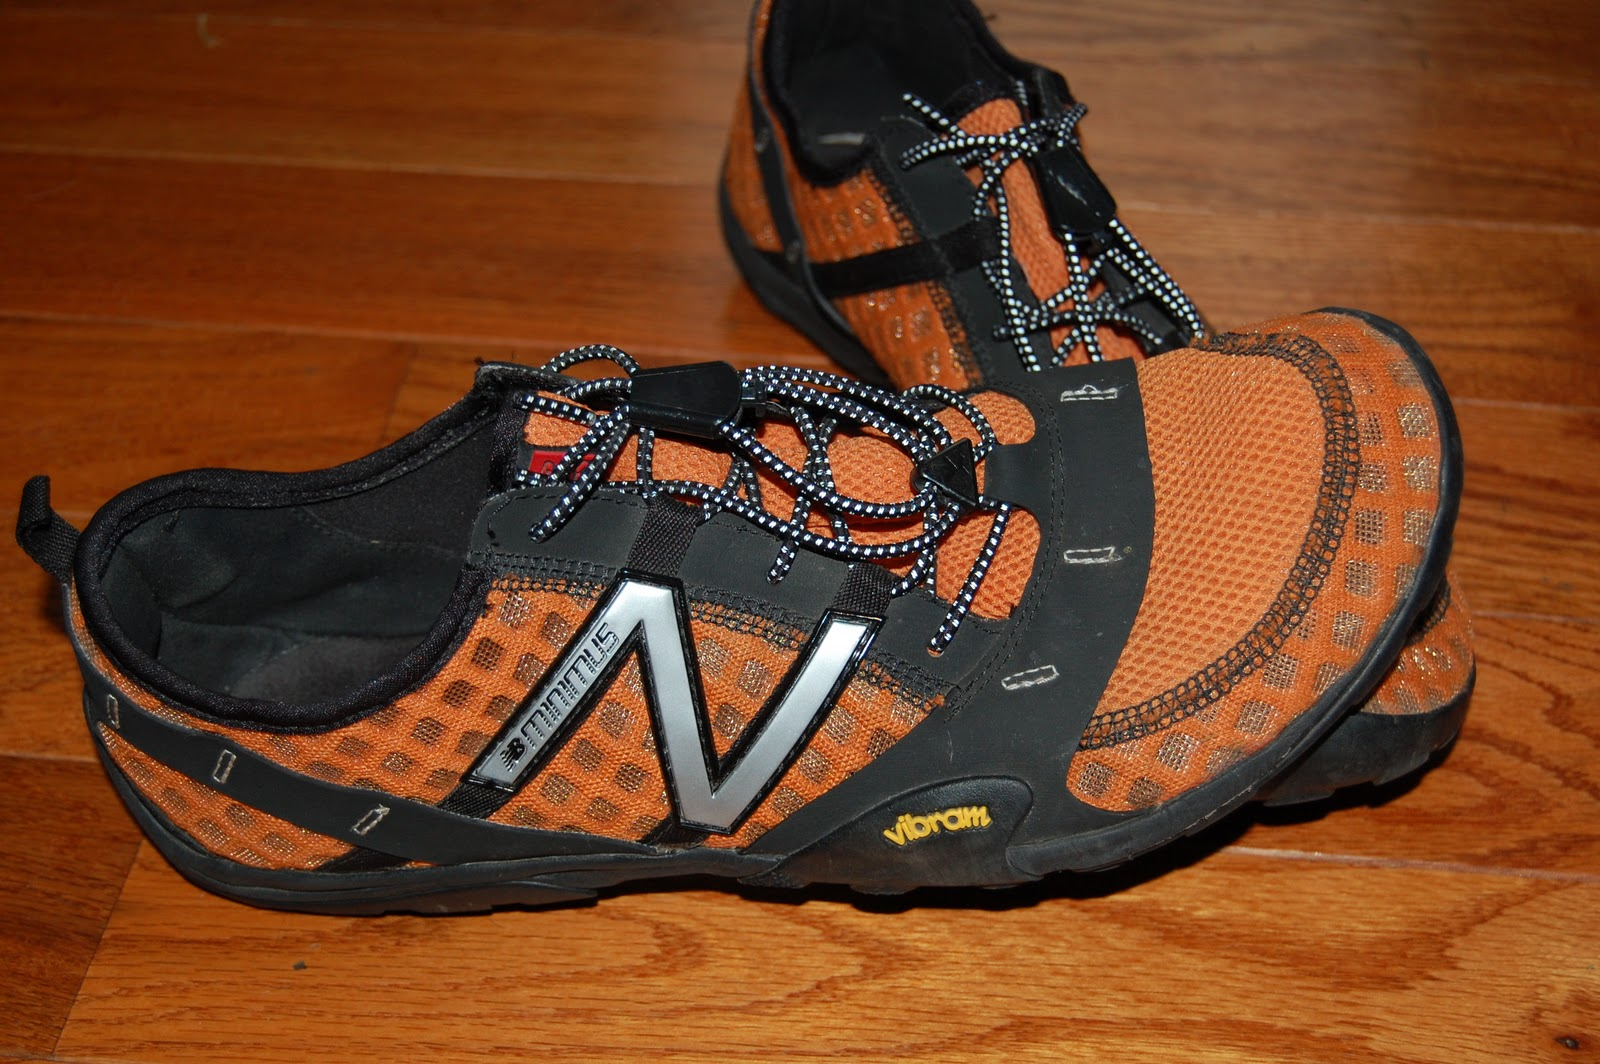 new balance minimus vs merrell barefoot access